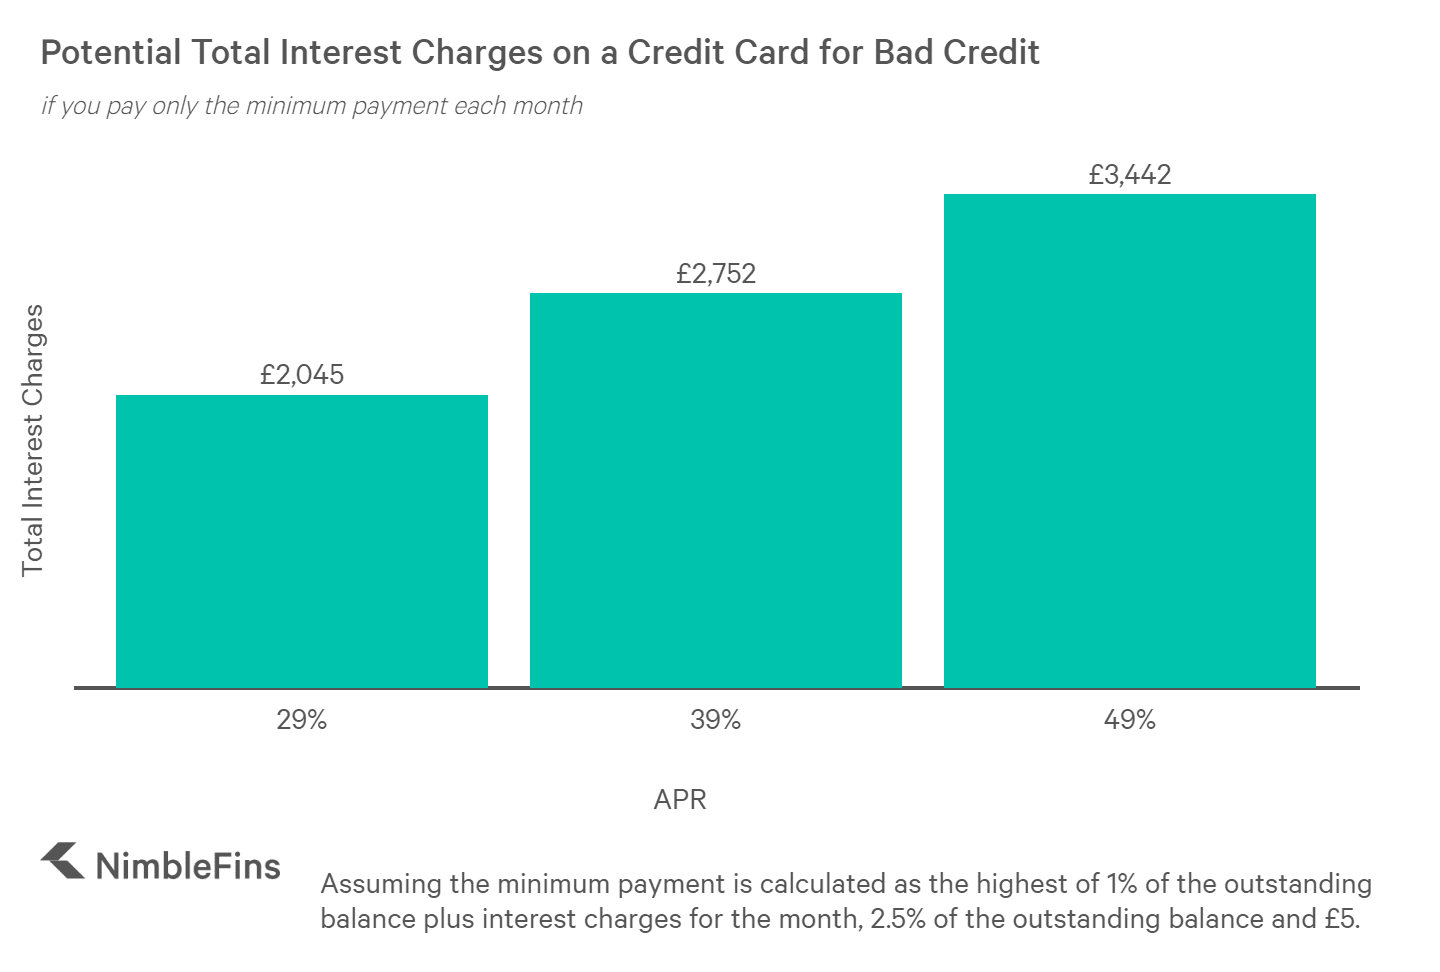 Chart showing the total interest charges on a bad credit credit card when cardholder pays minimum each month